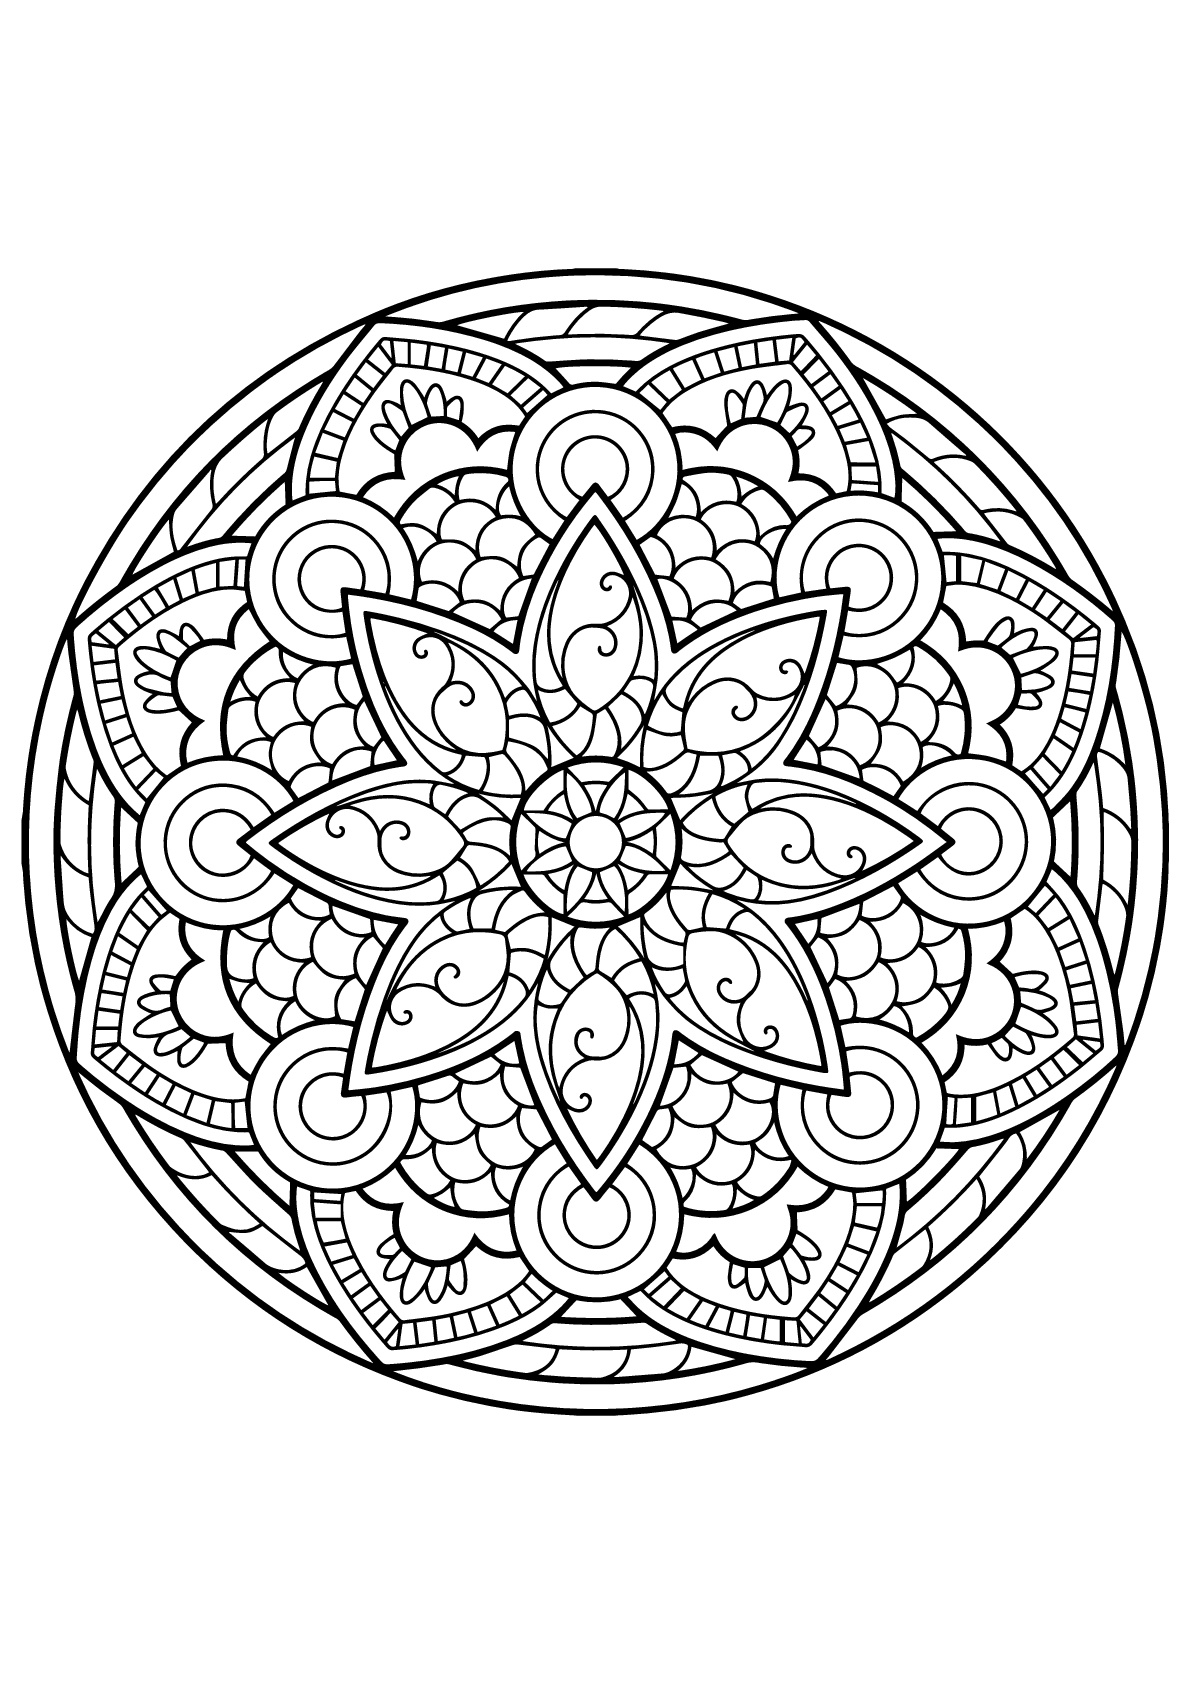 mandalas to color for adults mandala from free coloring books for adults 26 malas adults mandalas to for color